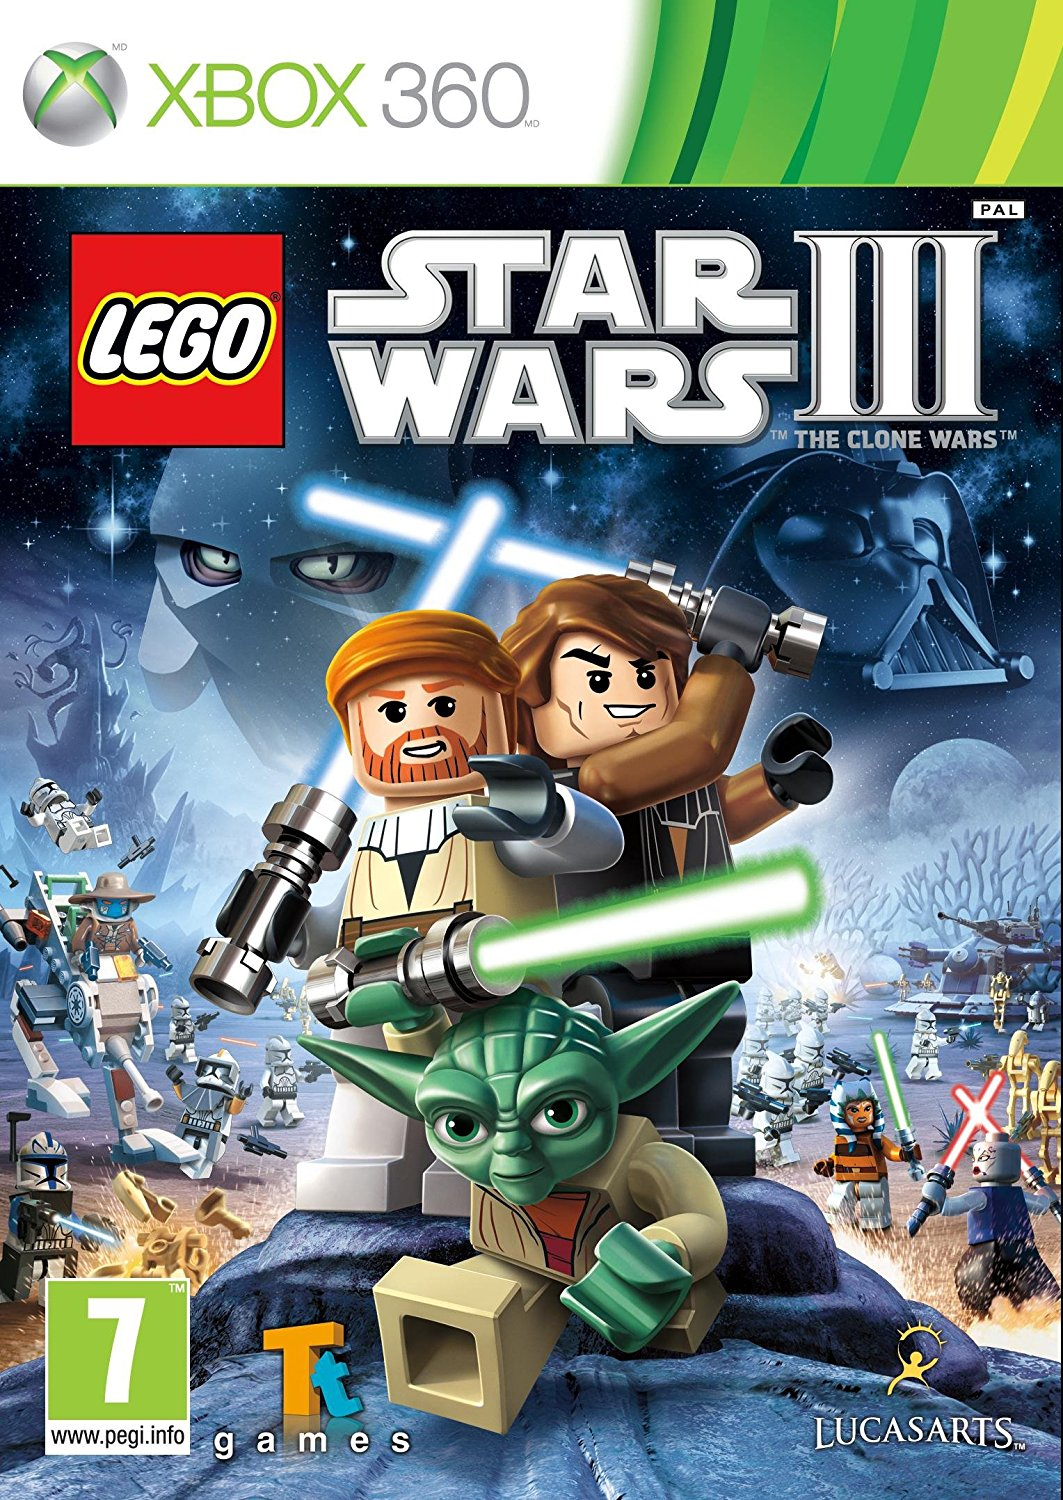 X360 LEGO Star Wars 3 The Clone Wars